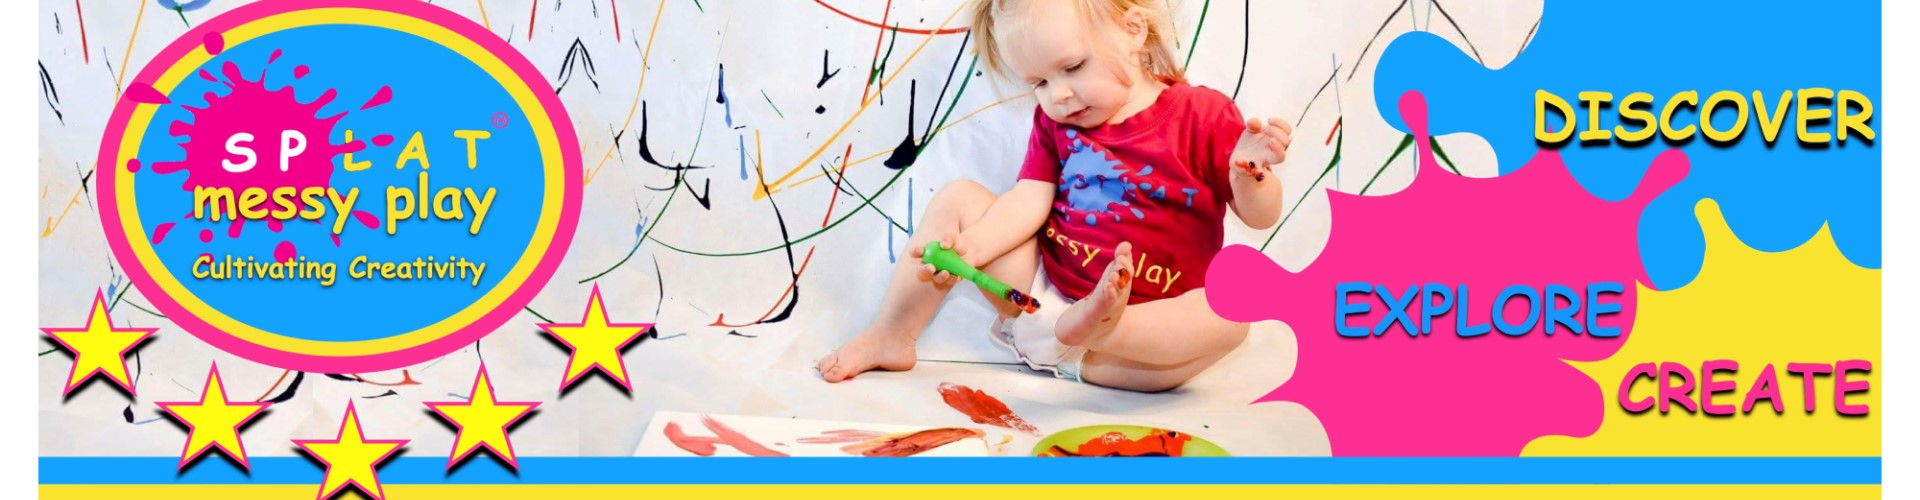 SPLAT MESSY PLAY background image